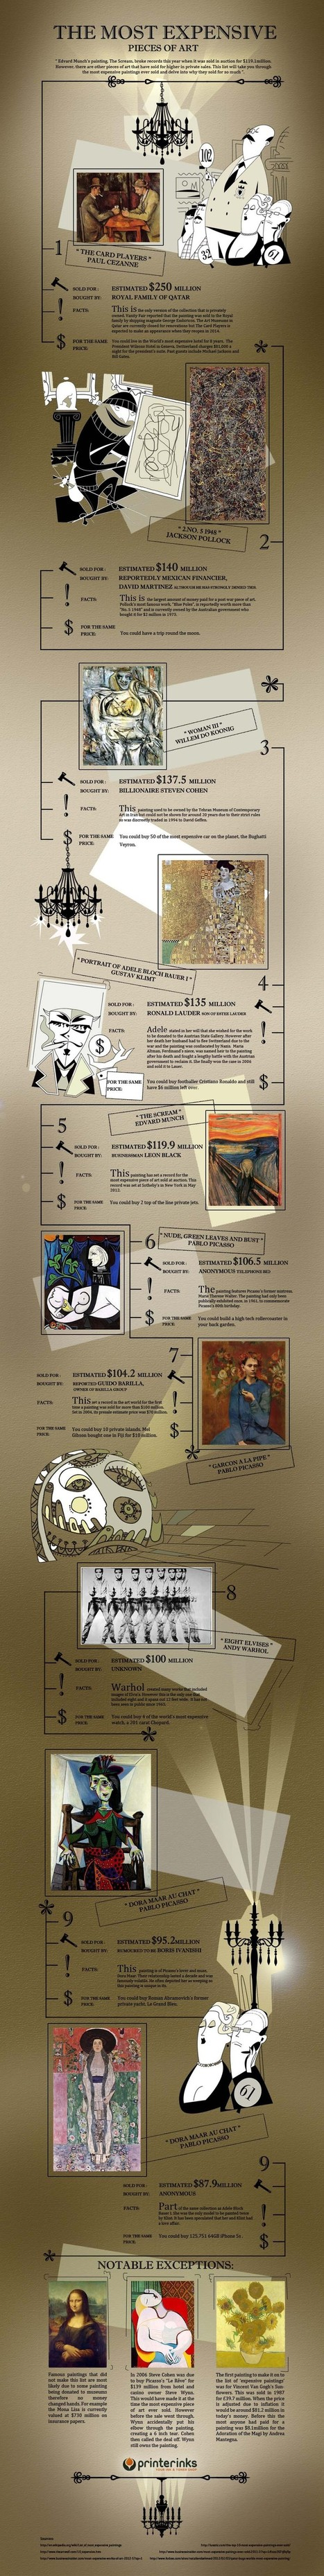 Art Market: The Most Expensive Works of Art | Cris Val's Favorite Art Topics | Scoop.it